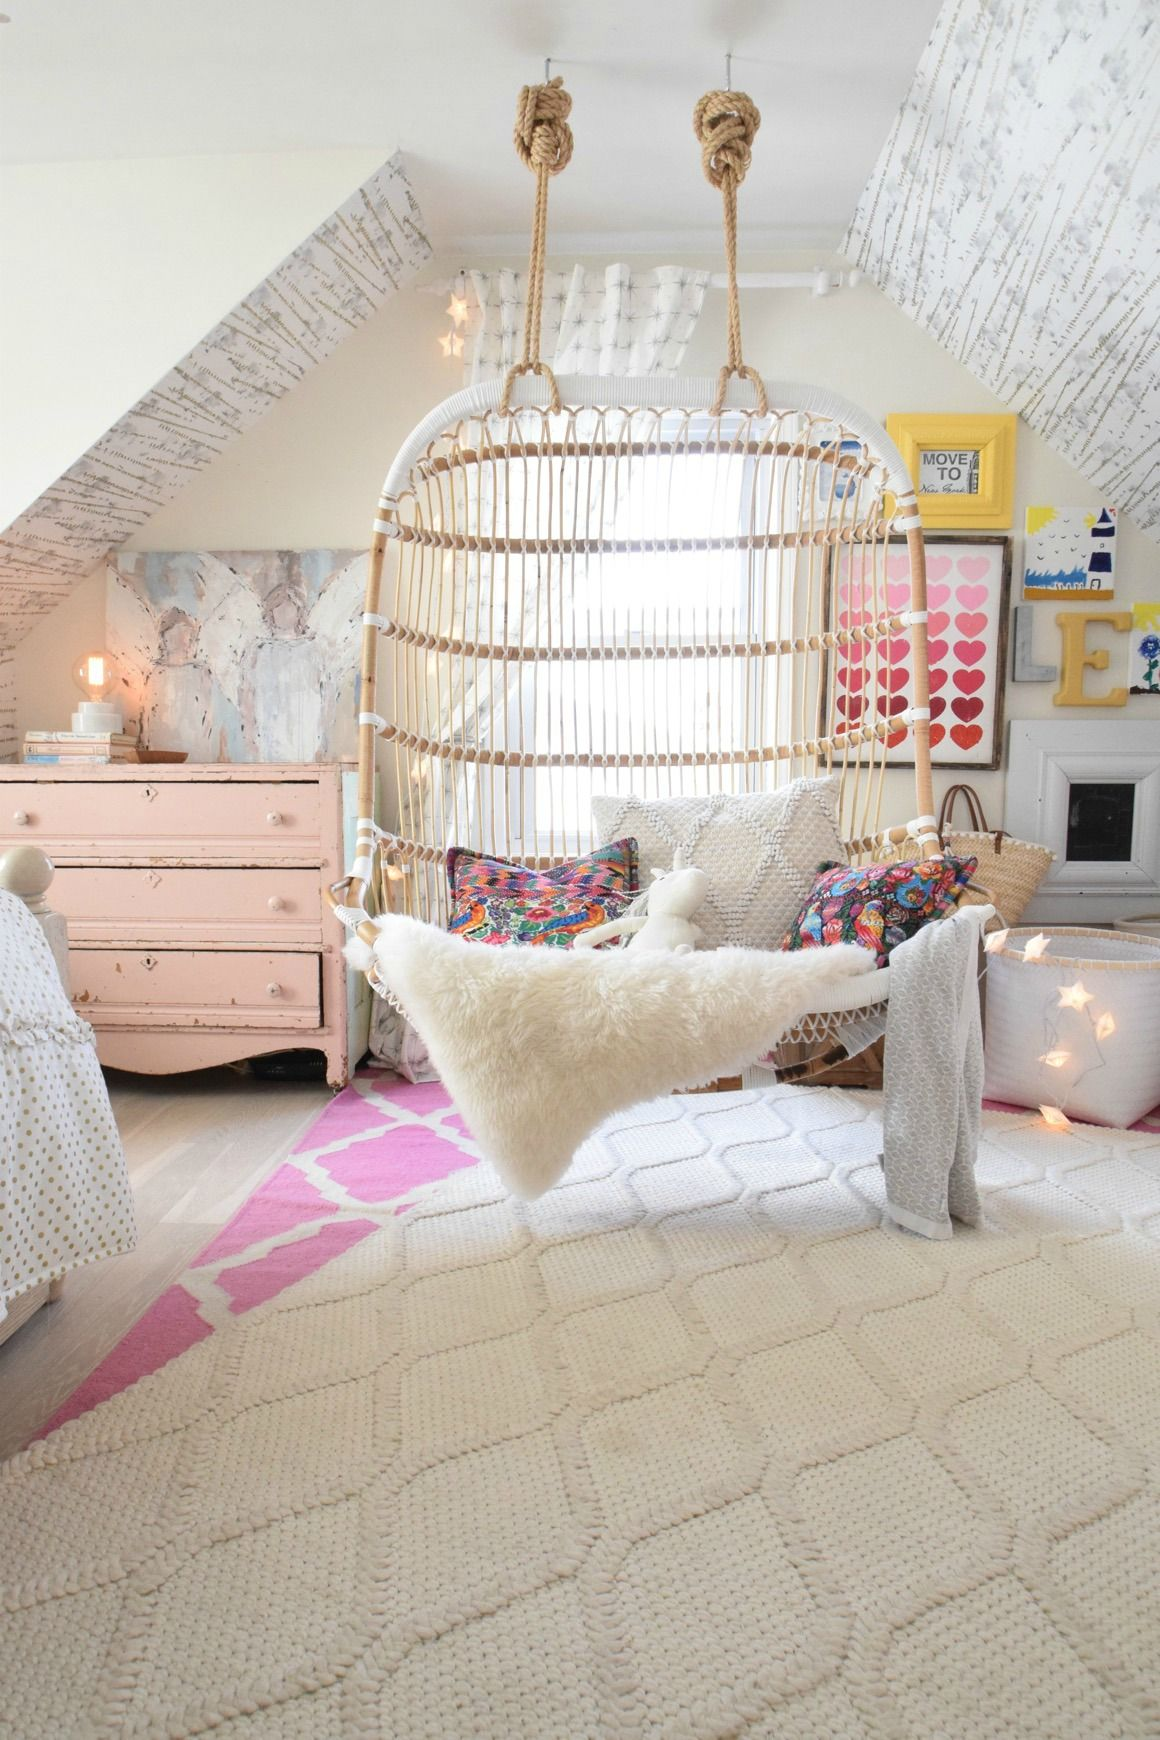 Chairs For Girls Room Wooden Kitchen Gumtree Love In The Form Of Our New Hanging Chair Rooms Pinterest Dreamy Kids Retreat Courtesy Nesting With Grace Double Via Serena Lily Wonderful Colorful Bedroom